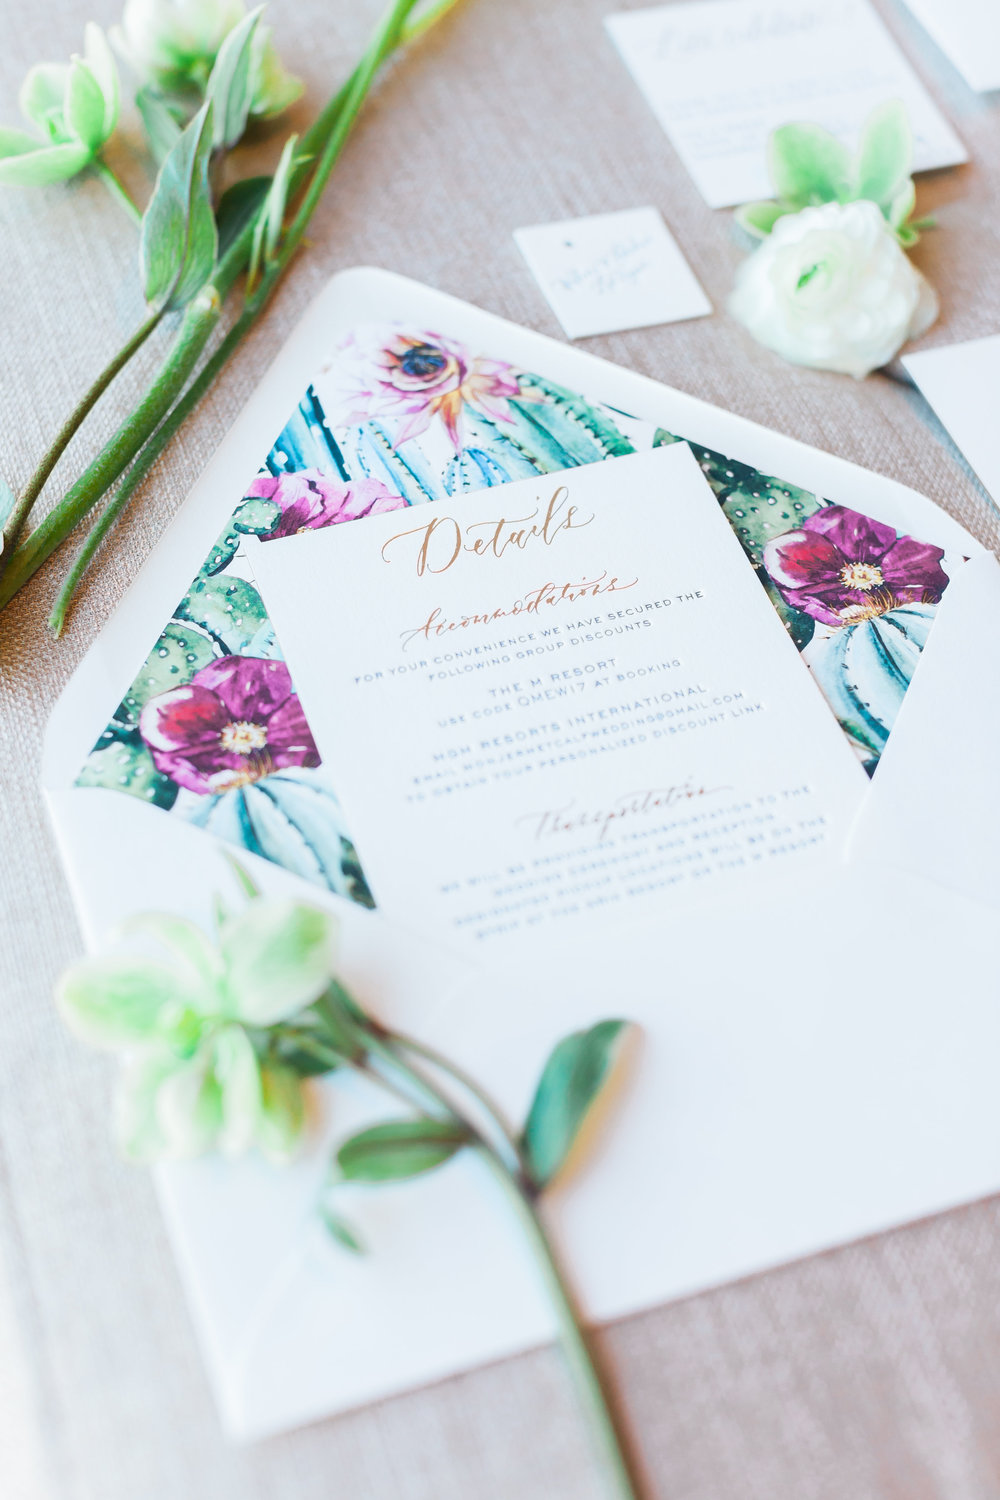 Beautiful invitation details